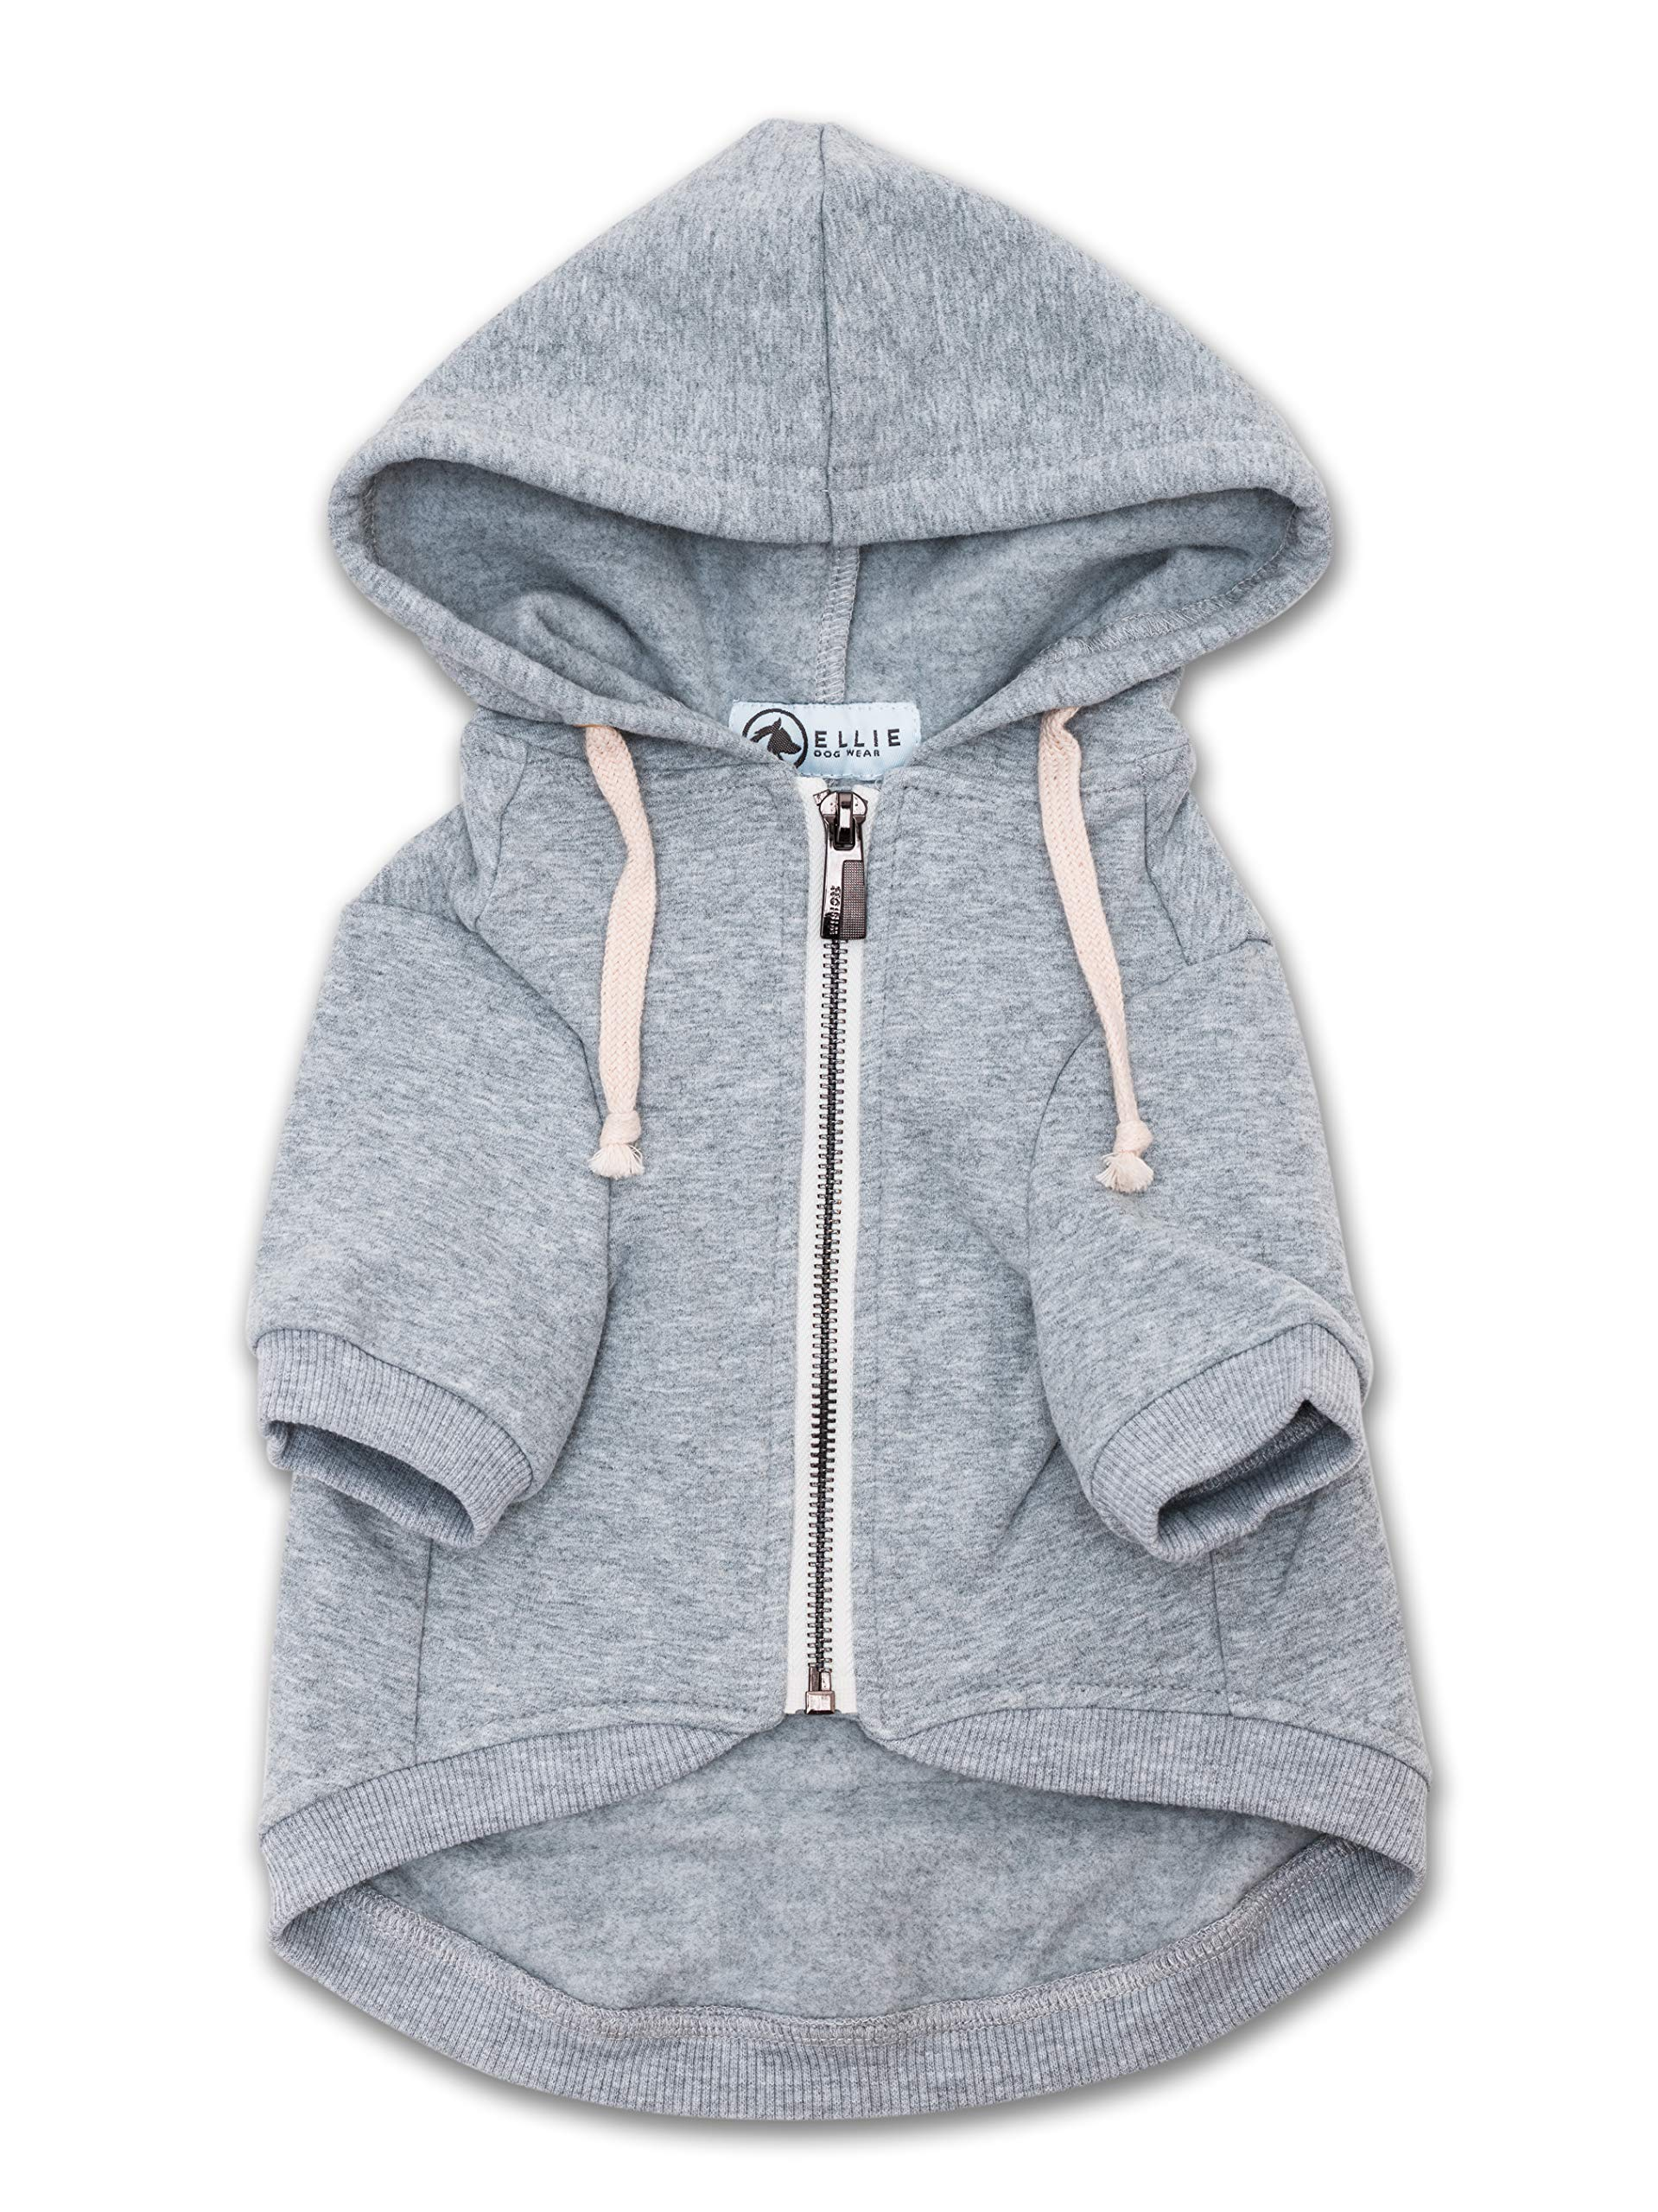 Ellie Dog Wear Zip Up Adventure Light Grey Dog Hoodie with Hook & Loop Pockets and Adjustable Drawstring Hood - Available in Extra Small to Extra Large. Comfortable & Versatile Dog Hoodies (XXL) by Ellie Dog Wear